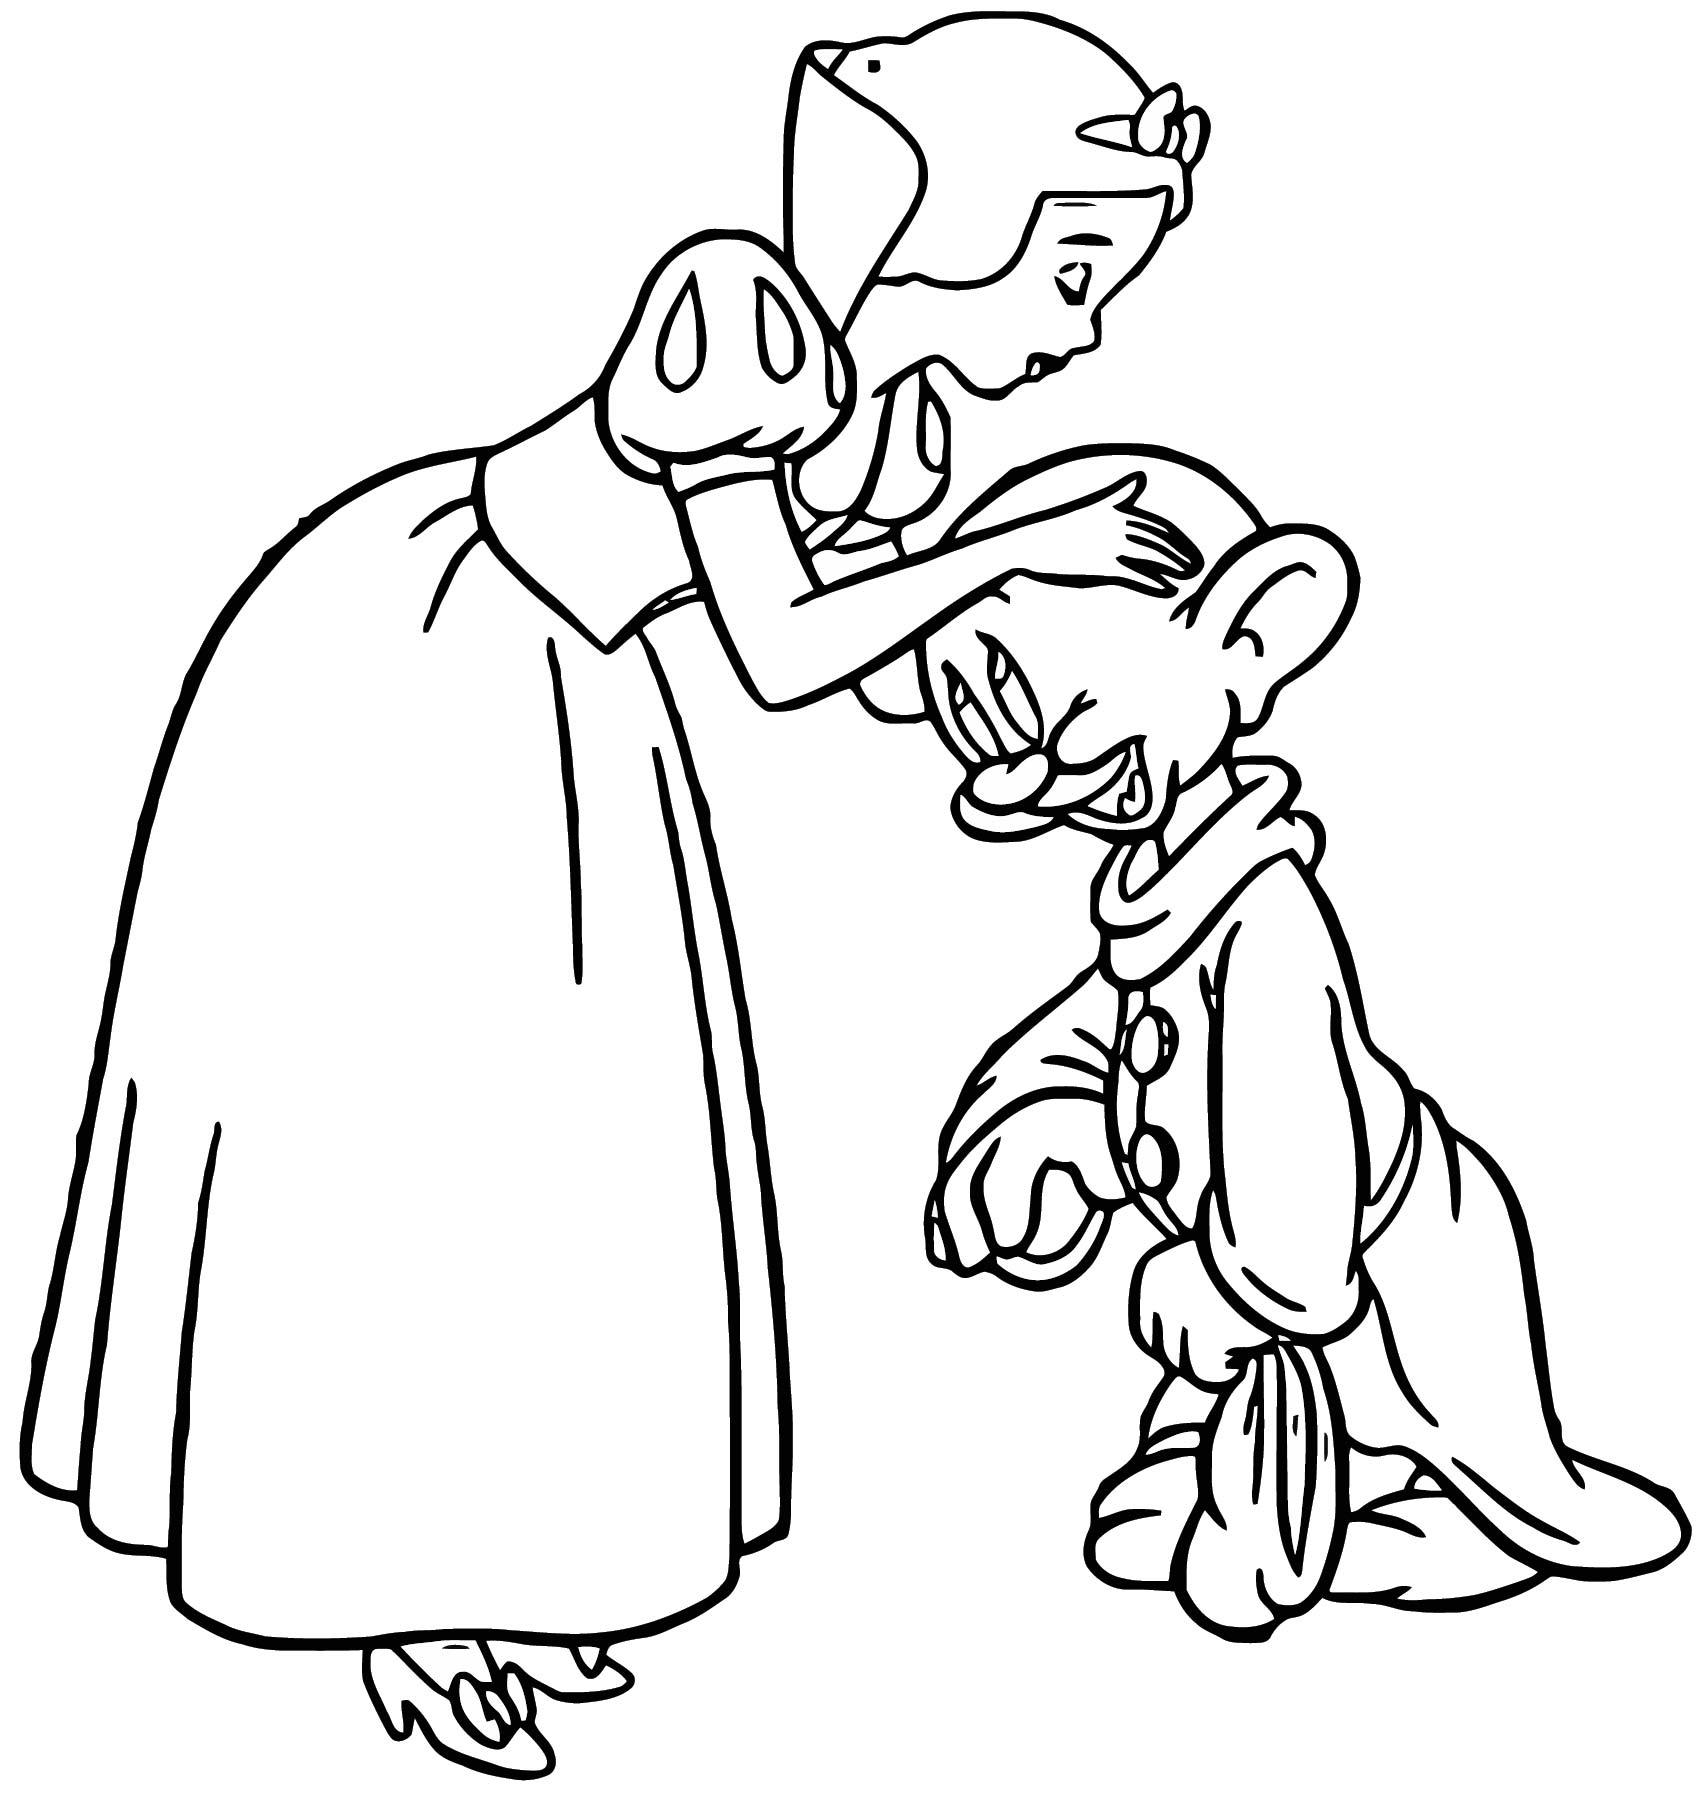 Snow White And The Seven Dwarfs Coloring Page (50 Images) - Class ...